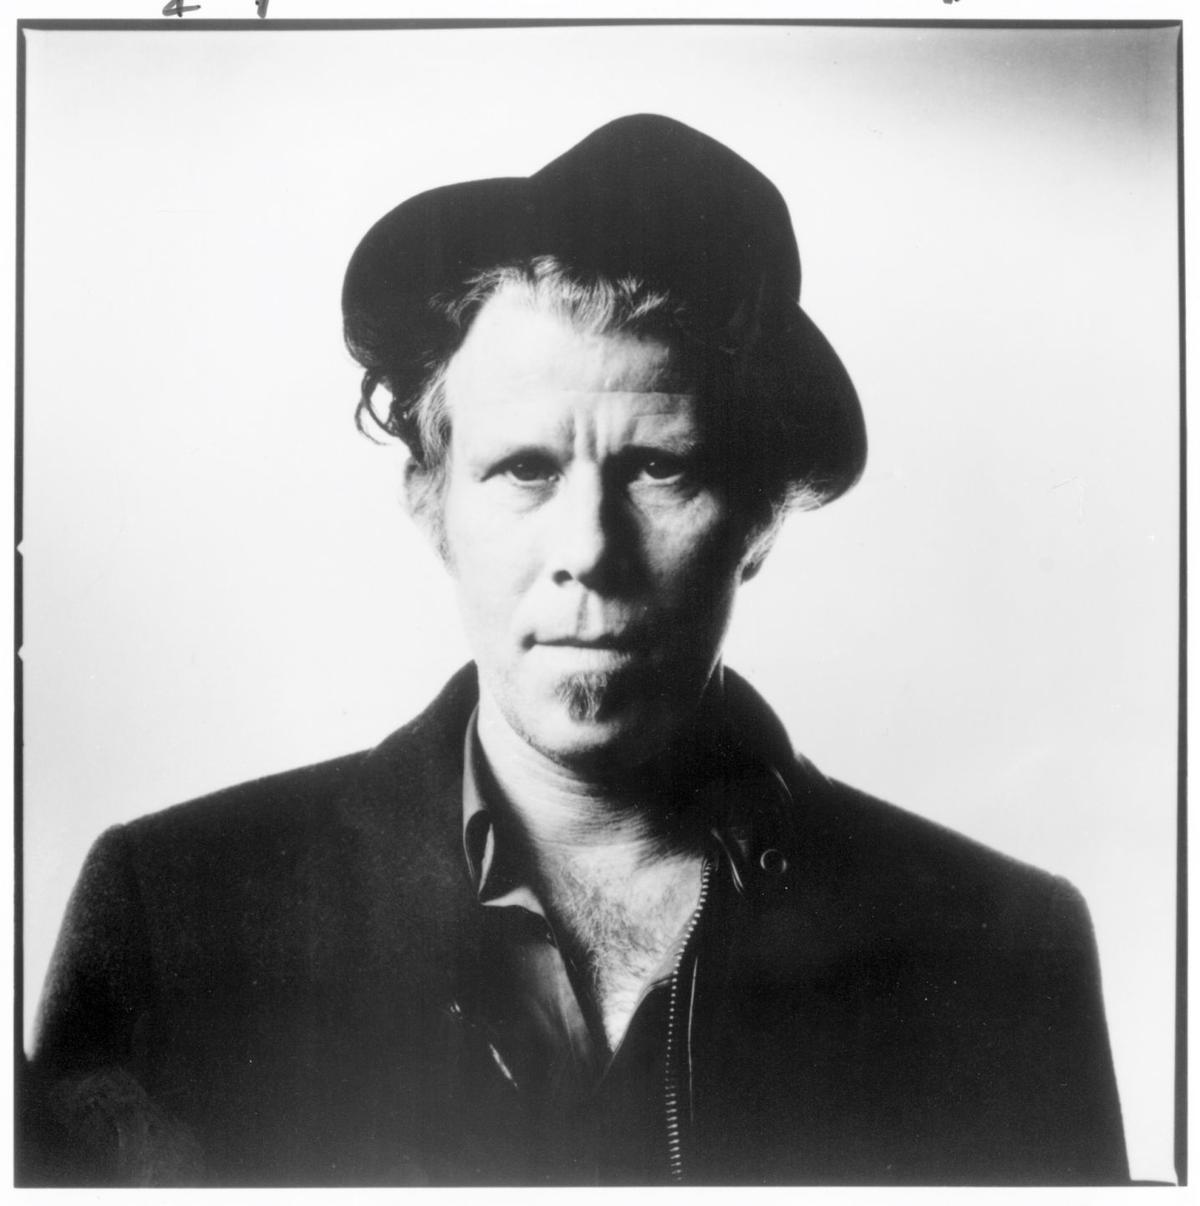 """2. """"Christmas Card From a Hooker in Minneapolis,"""" Tom Waits"""